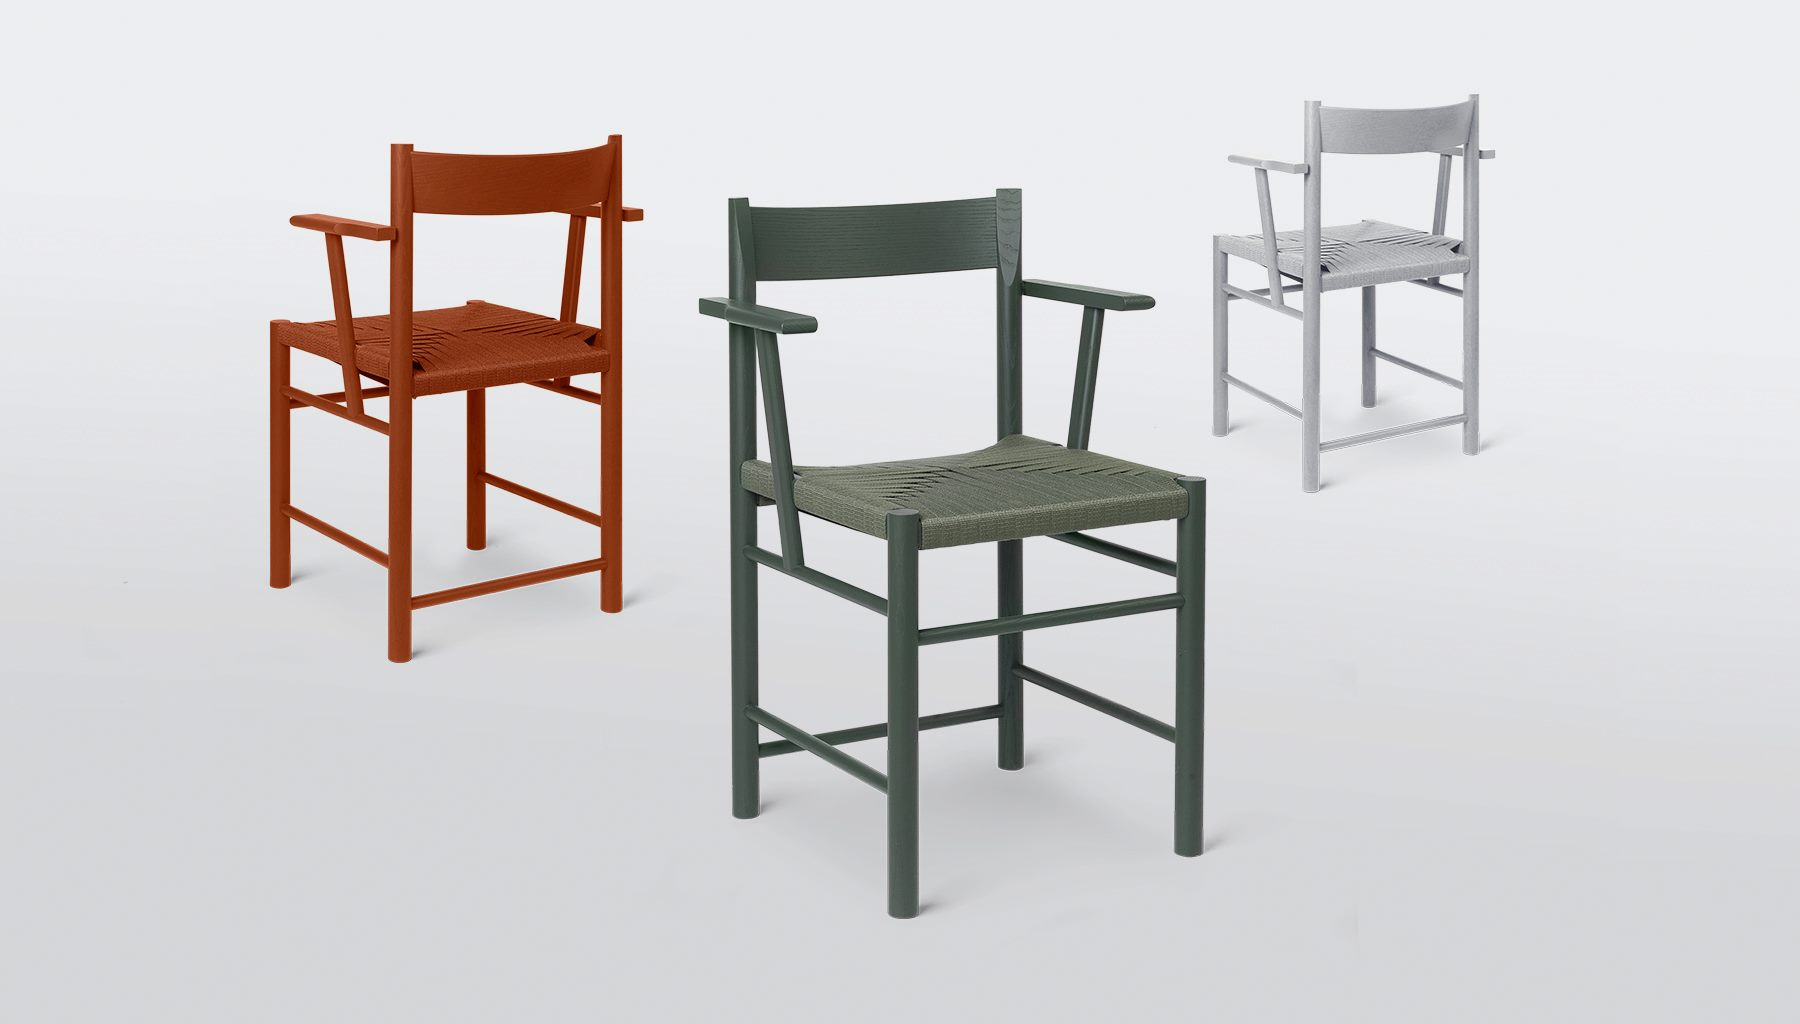 The 'F' chair by Rasmus Bækkel Fex has been out since mid 2017 but the collection remained a key focus of the brand's presentation at Stockholm Furniture & Lighting Fair as a version with arms was added.